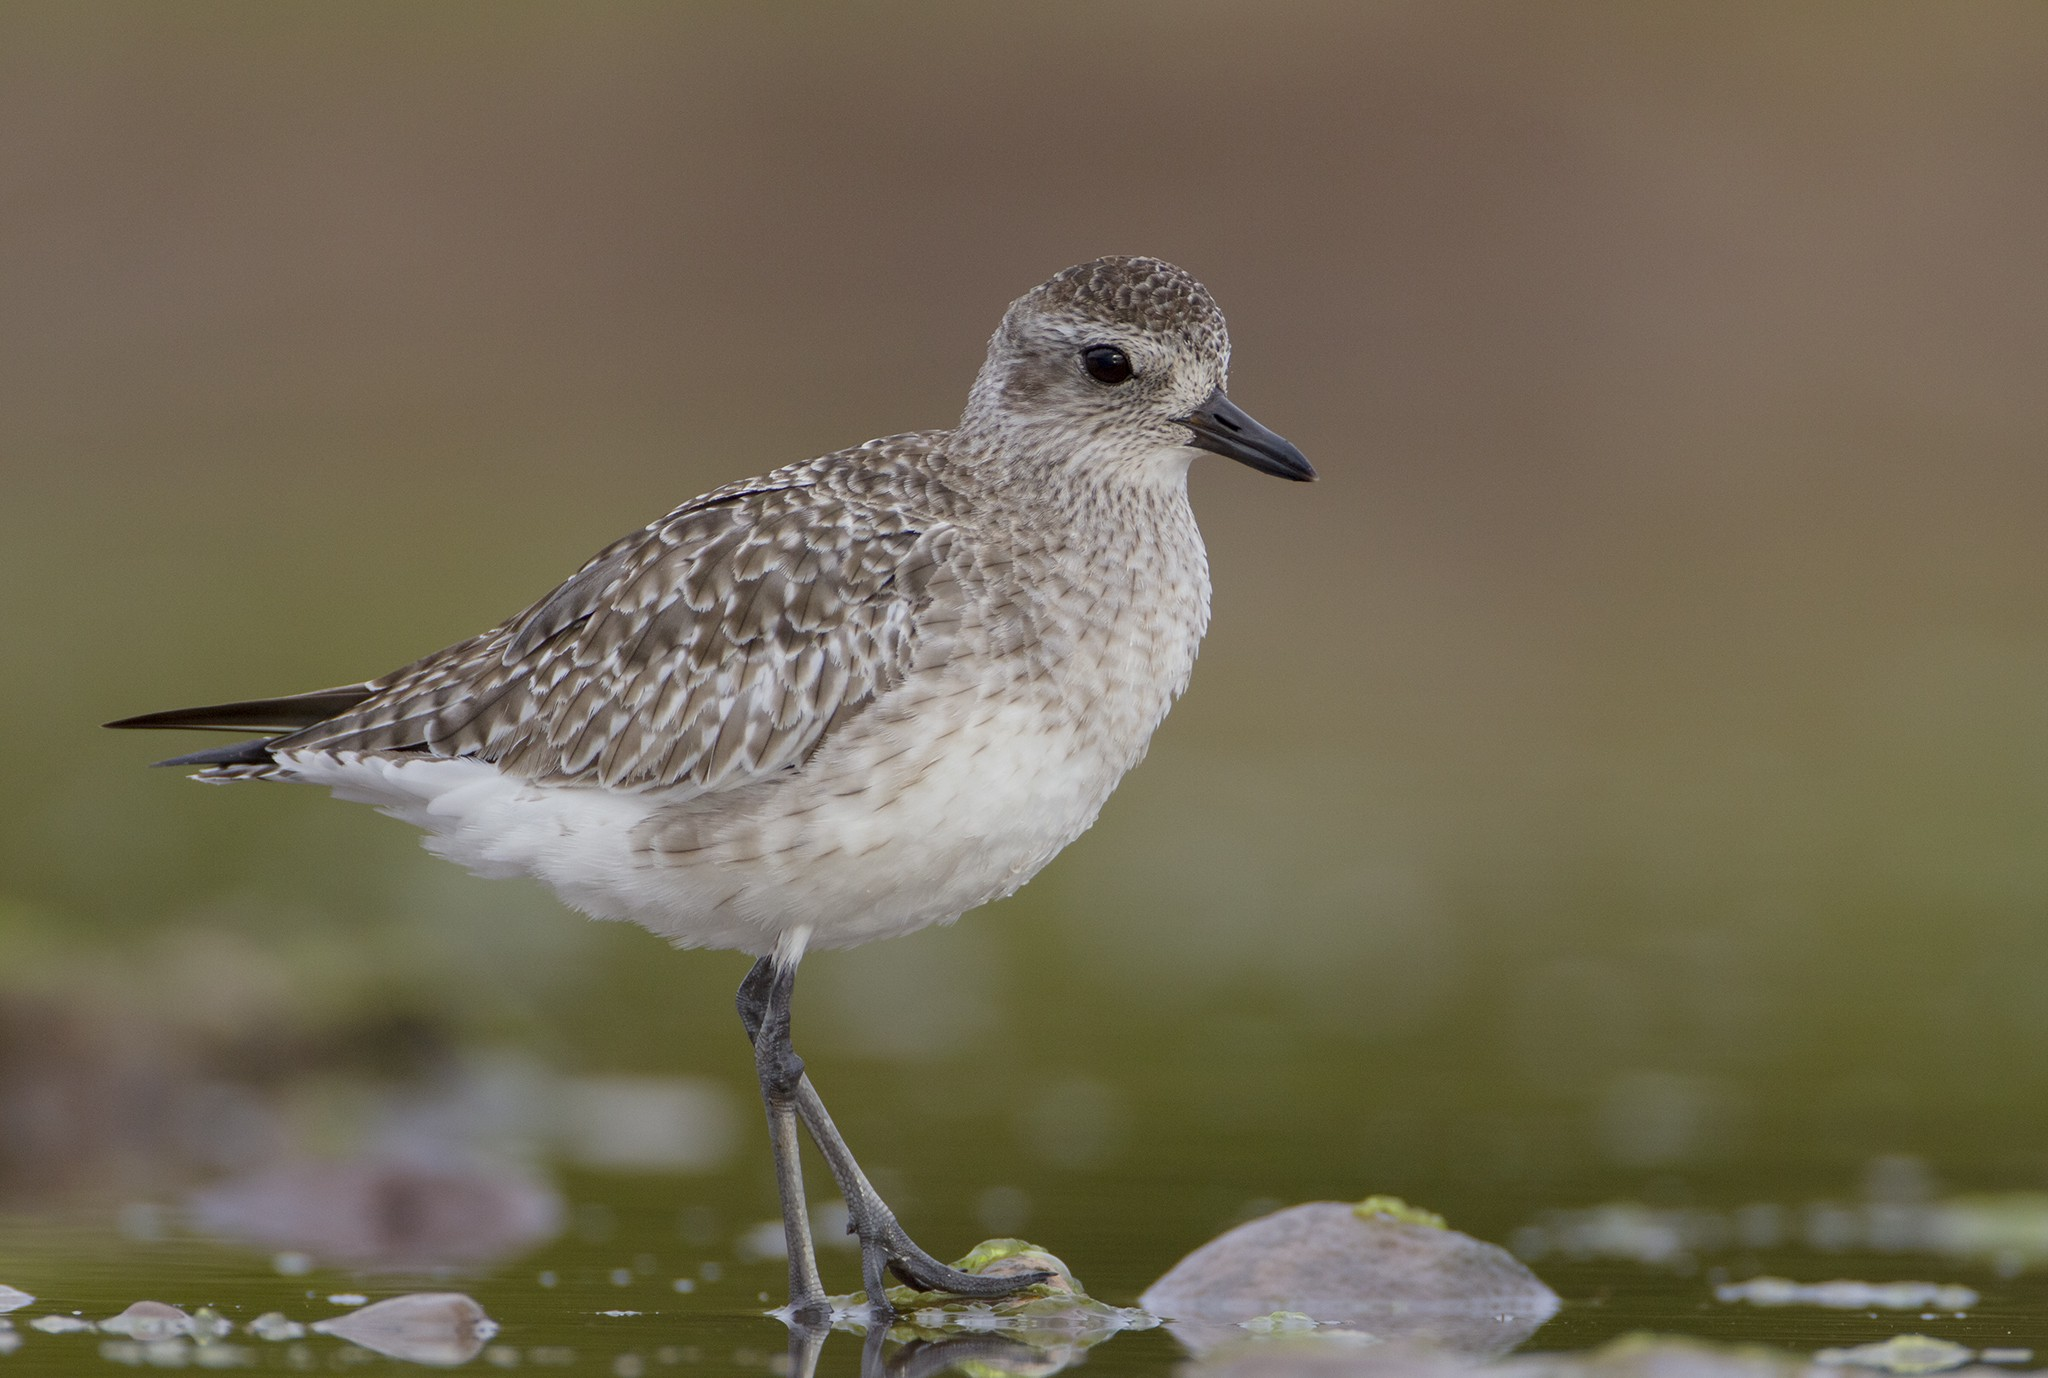 Black-bellied Plover in basic plumage stands near shallow water